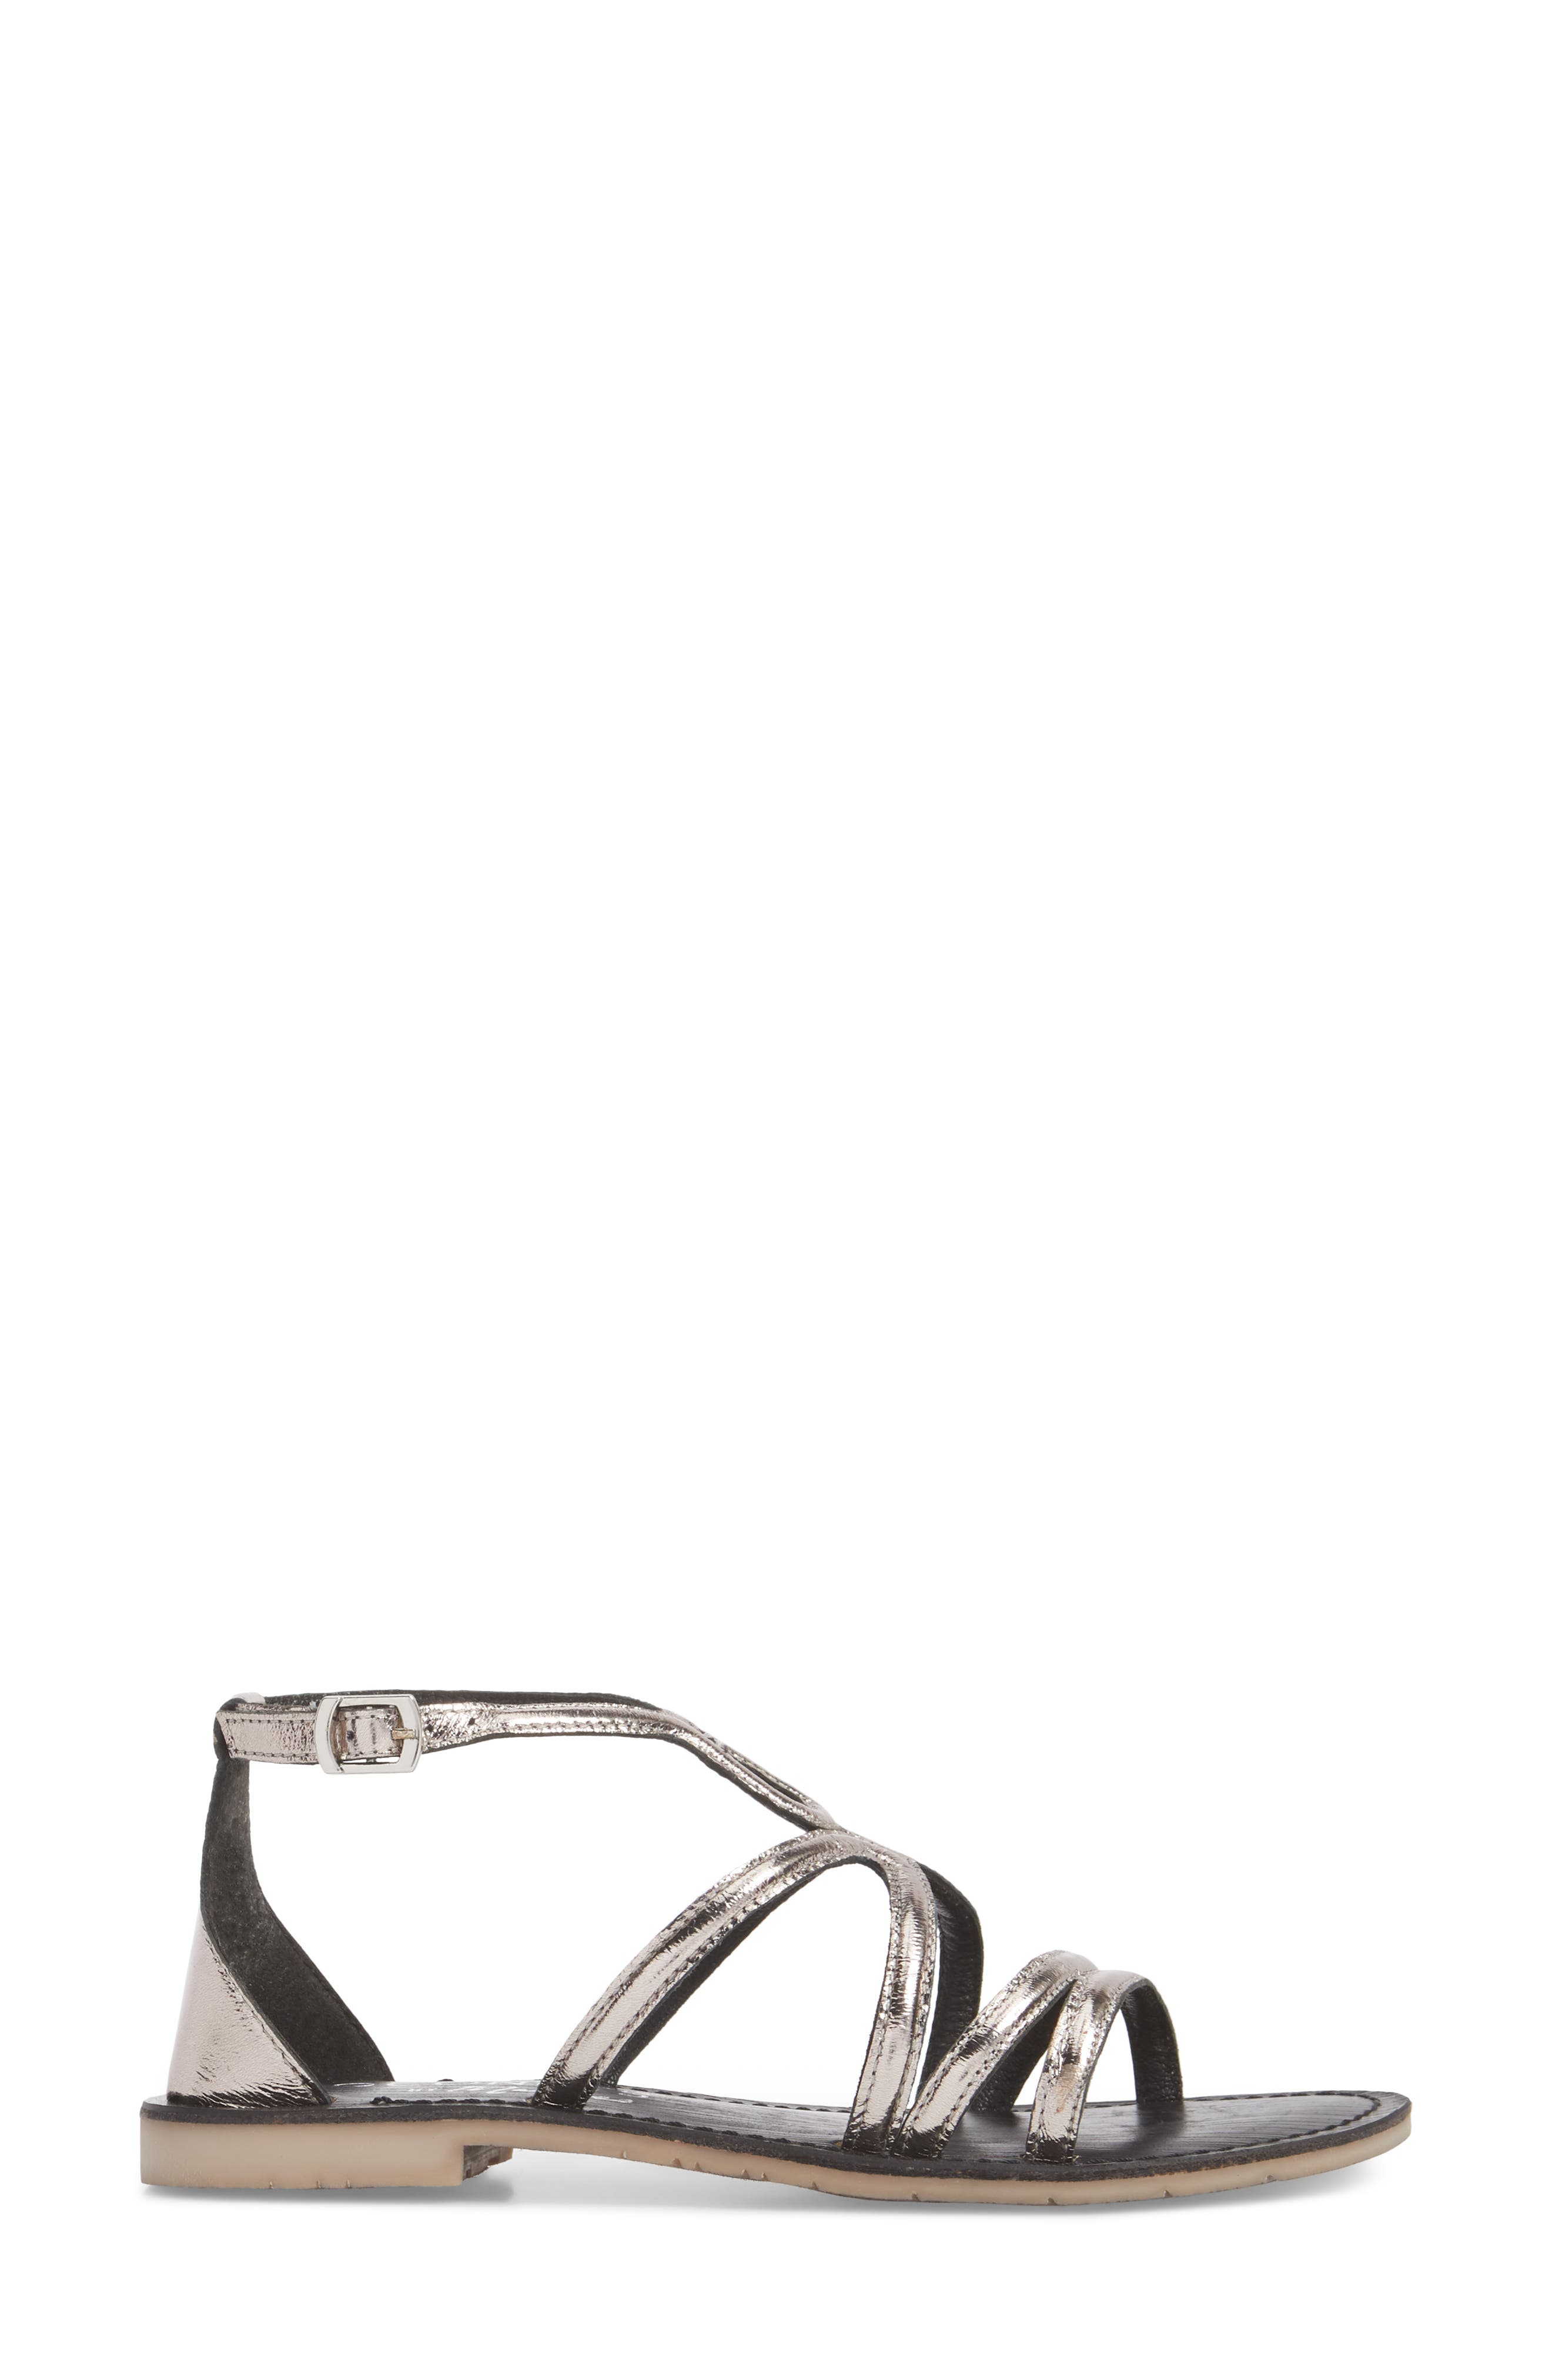 Palm Beach Metallic Sandal,                             Alternate thumbnail 3, color,                             Pewter Leather